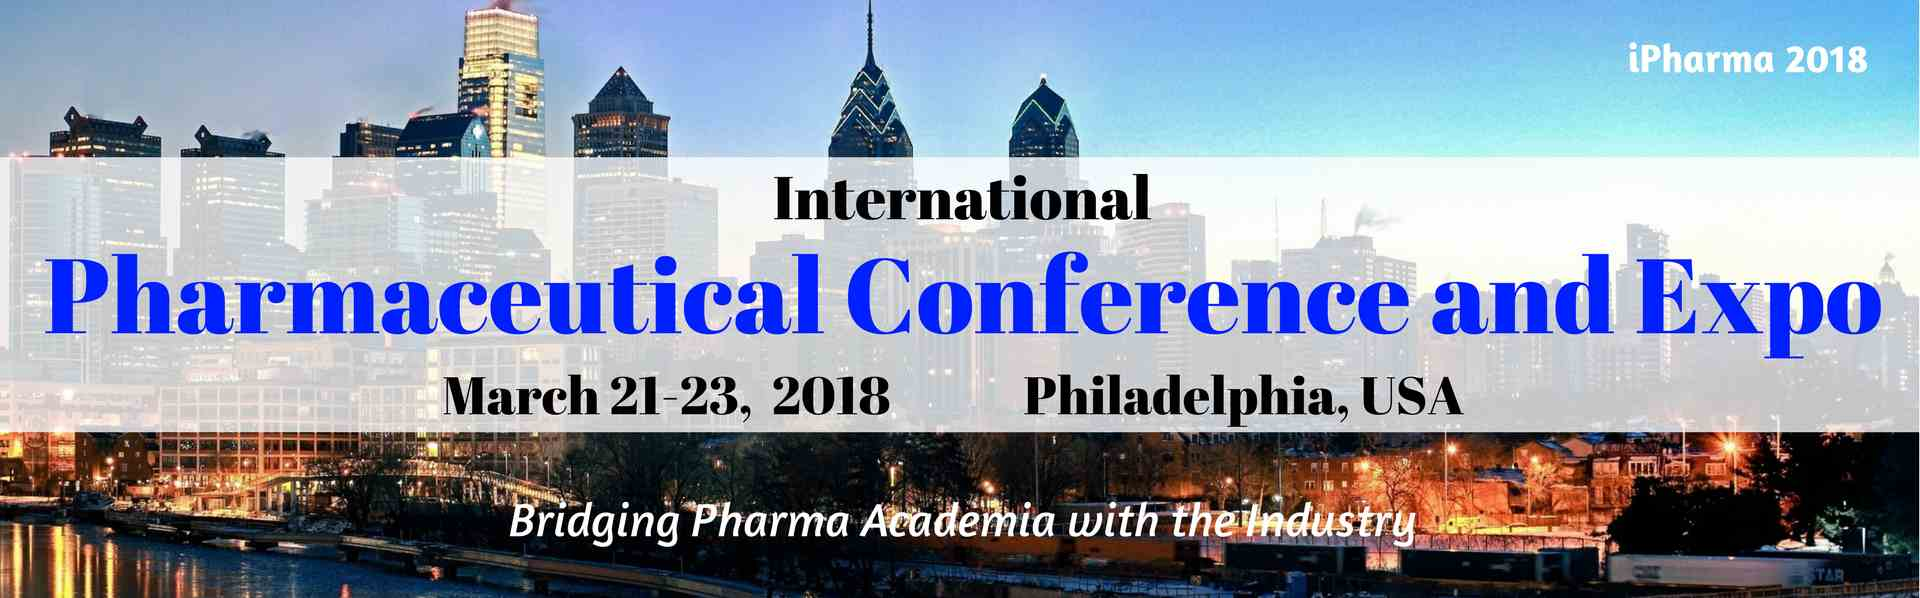 ipharma_2018_philly